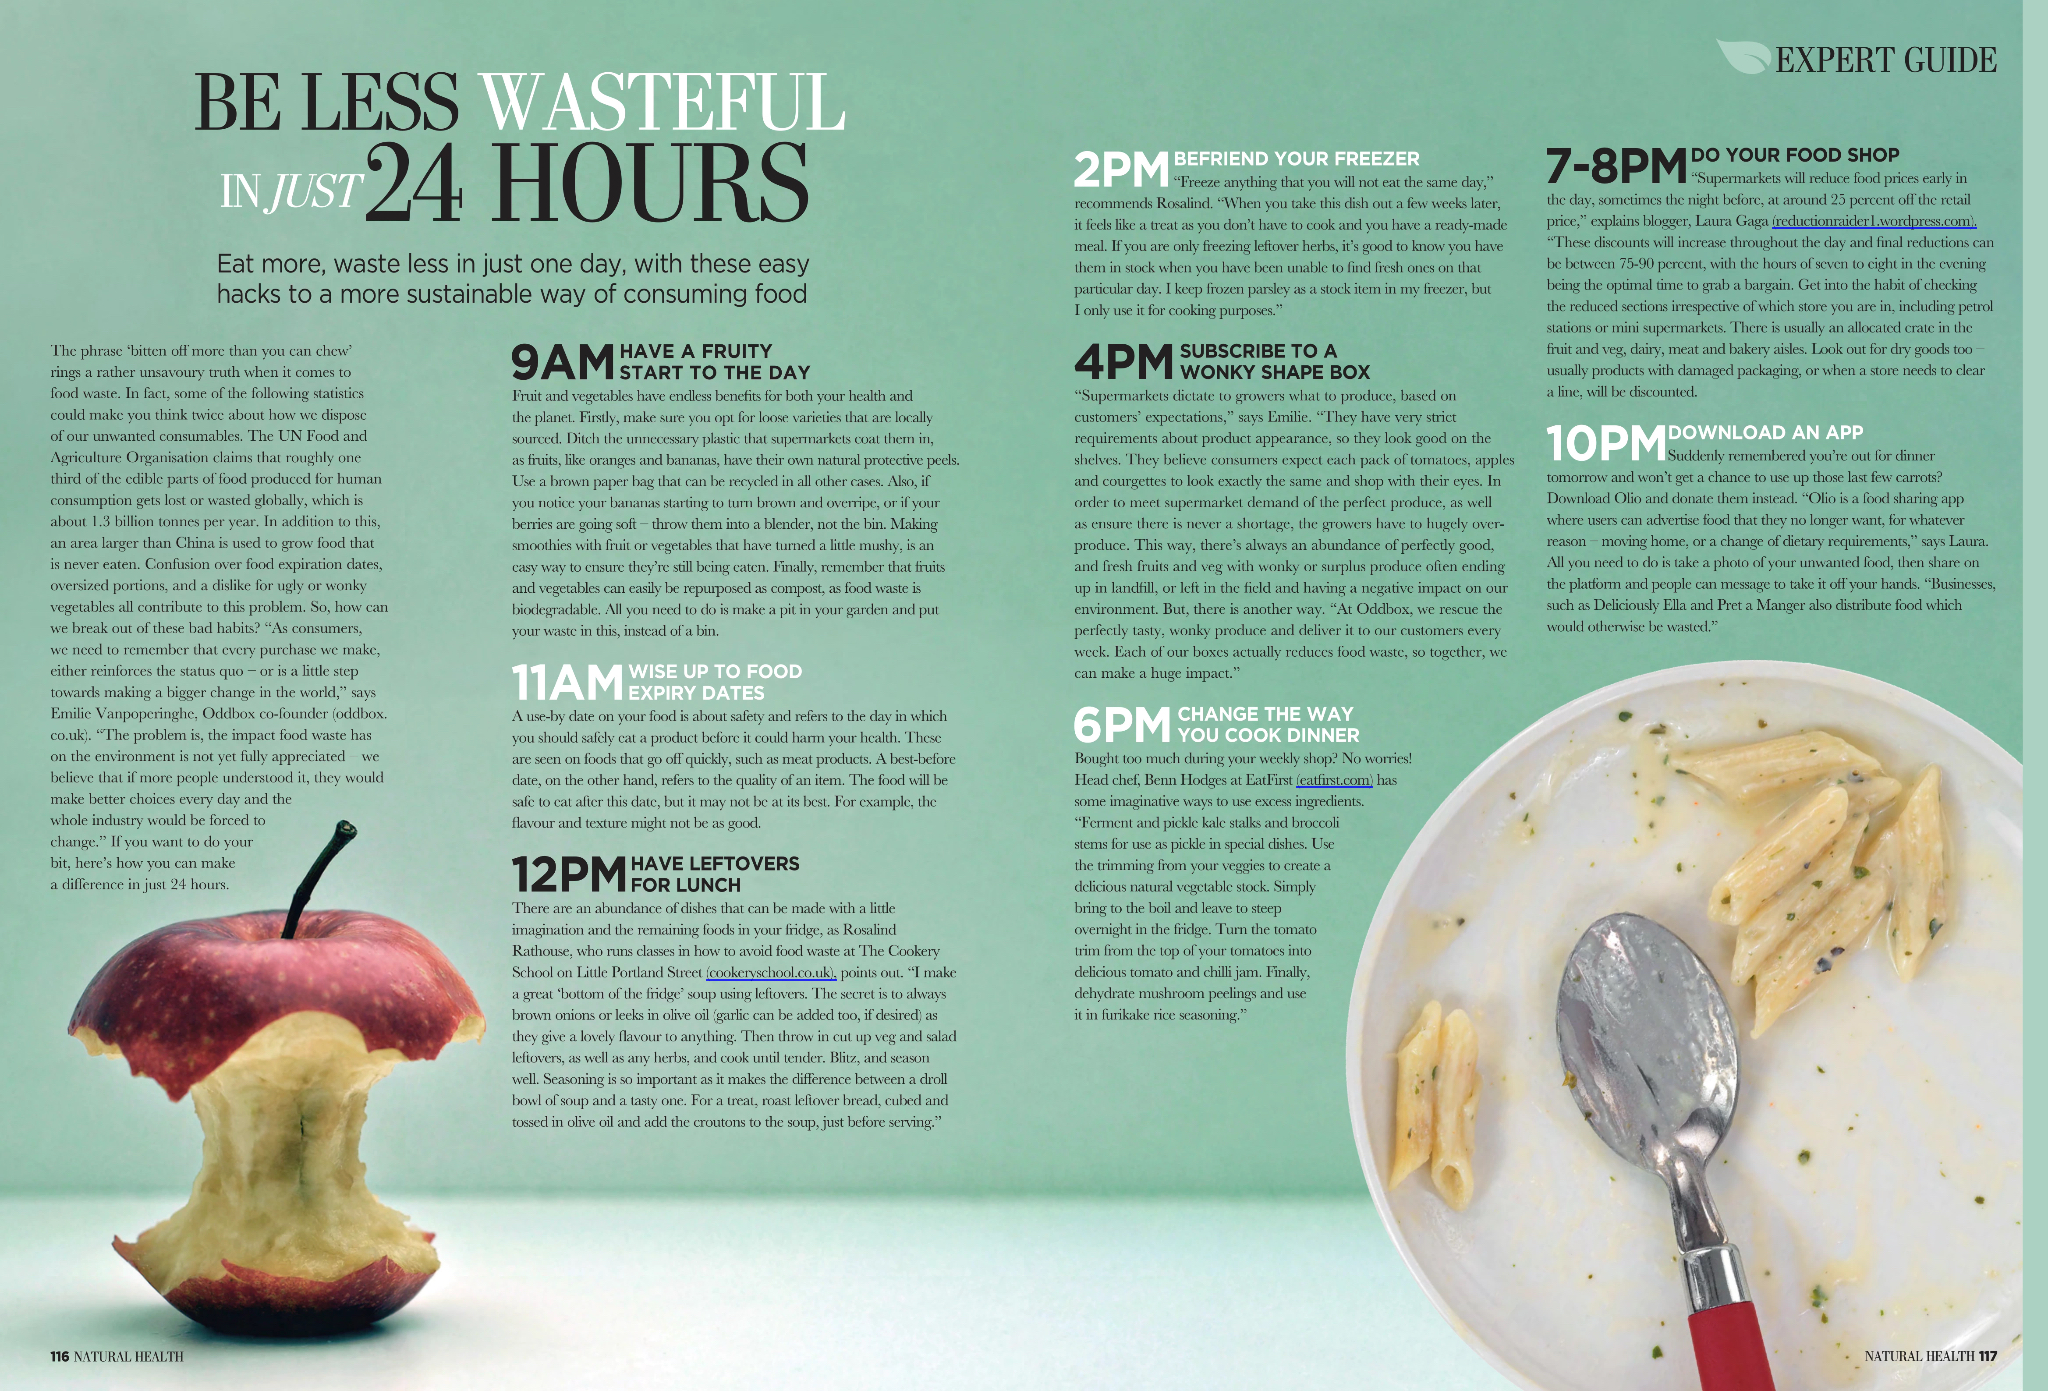 How to be less wasteful in just 24 hours (Natural Health - 02/19) -